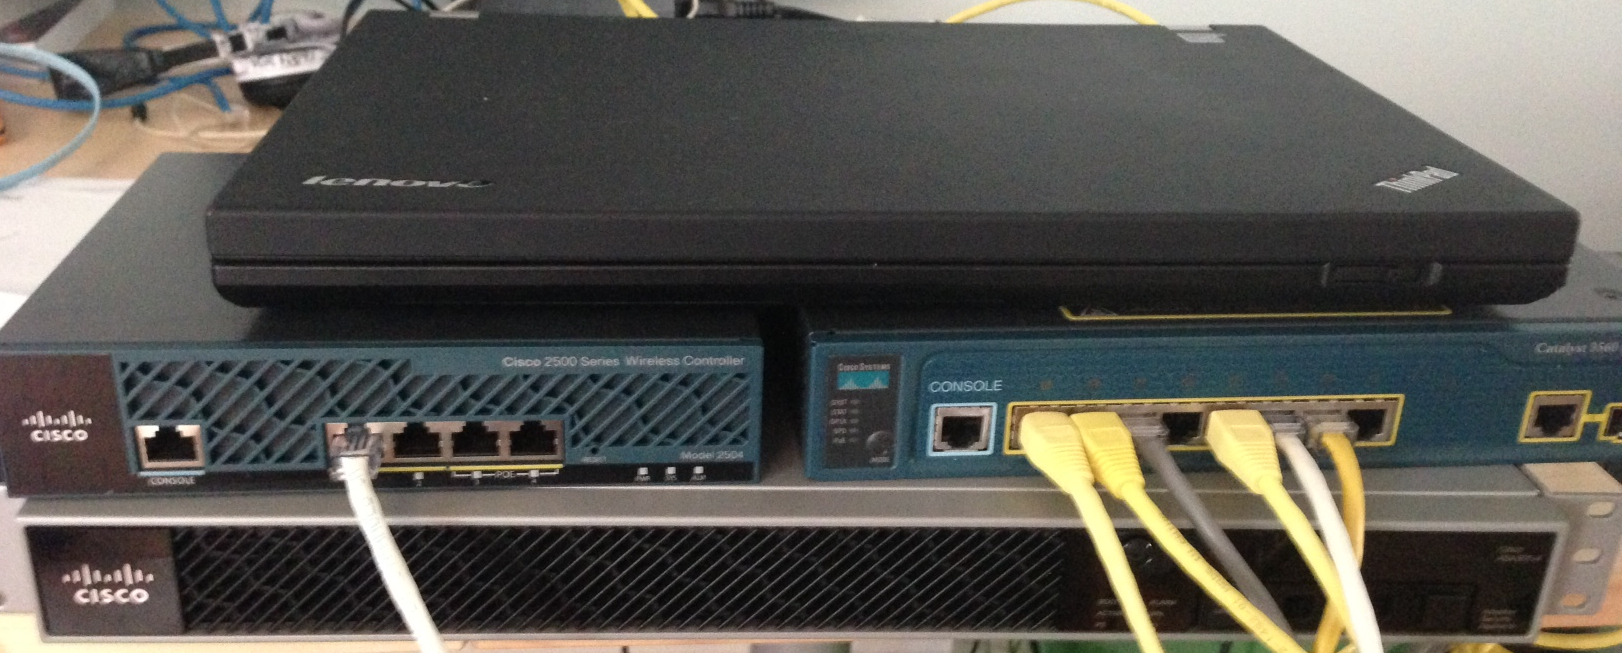 Labimage Building a next generation firewall ASA CX home lab Part 1   Configuring ASA 5515 and CX